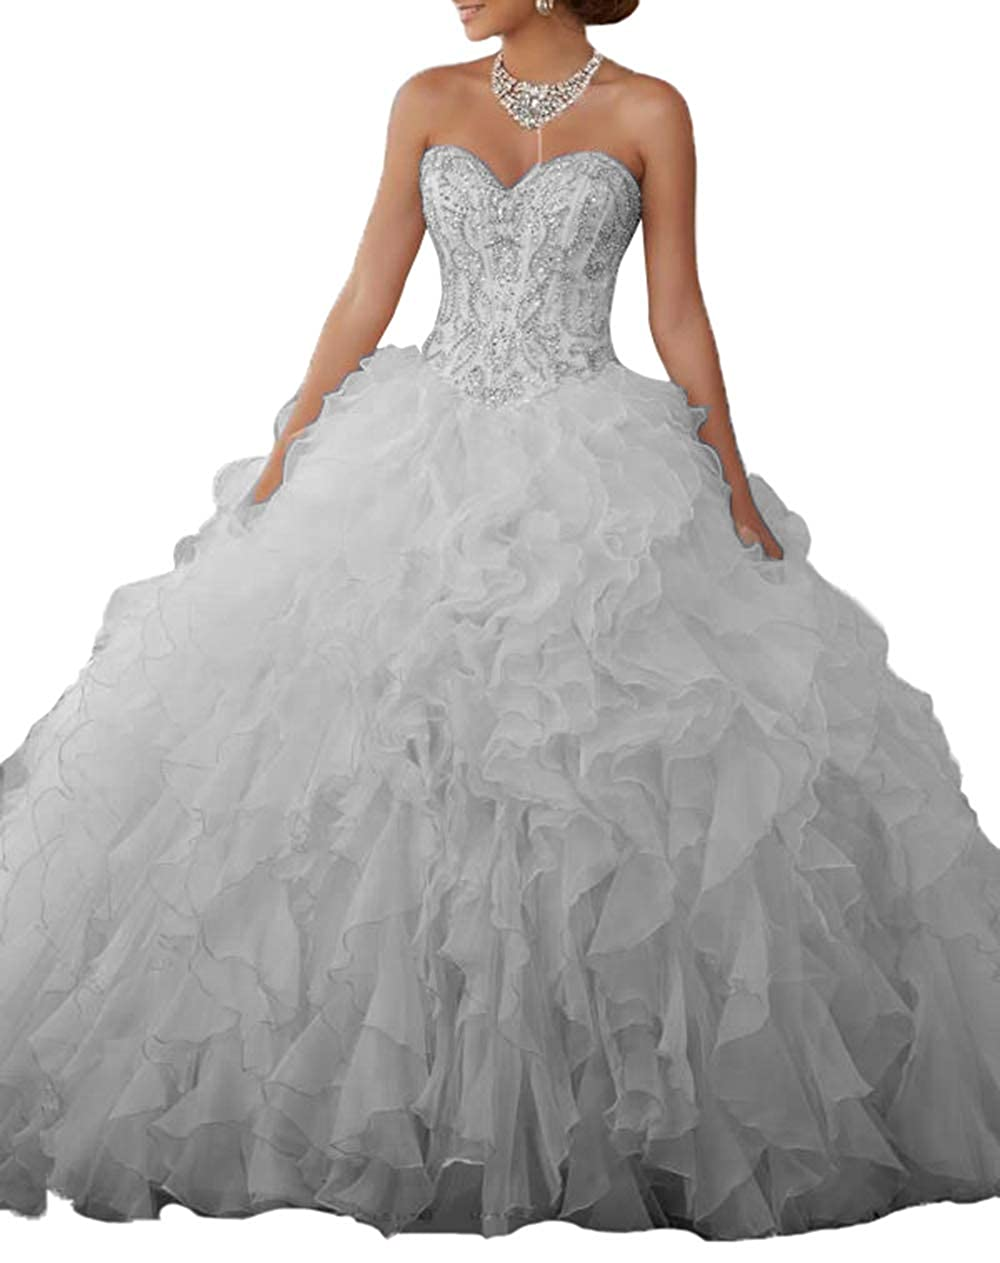 50d0356c0dc1 Aishanglina Women's Sweetheart Heavy Beaded Organza Ruffle Quinceanera  Dresses Prom Ball Gowns Lace Up Back at Amazon Women's Clothing store: